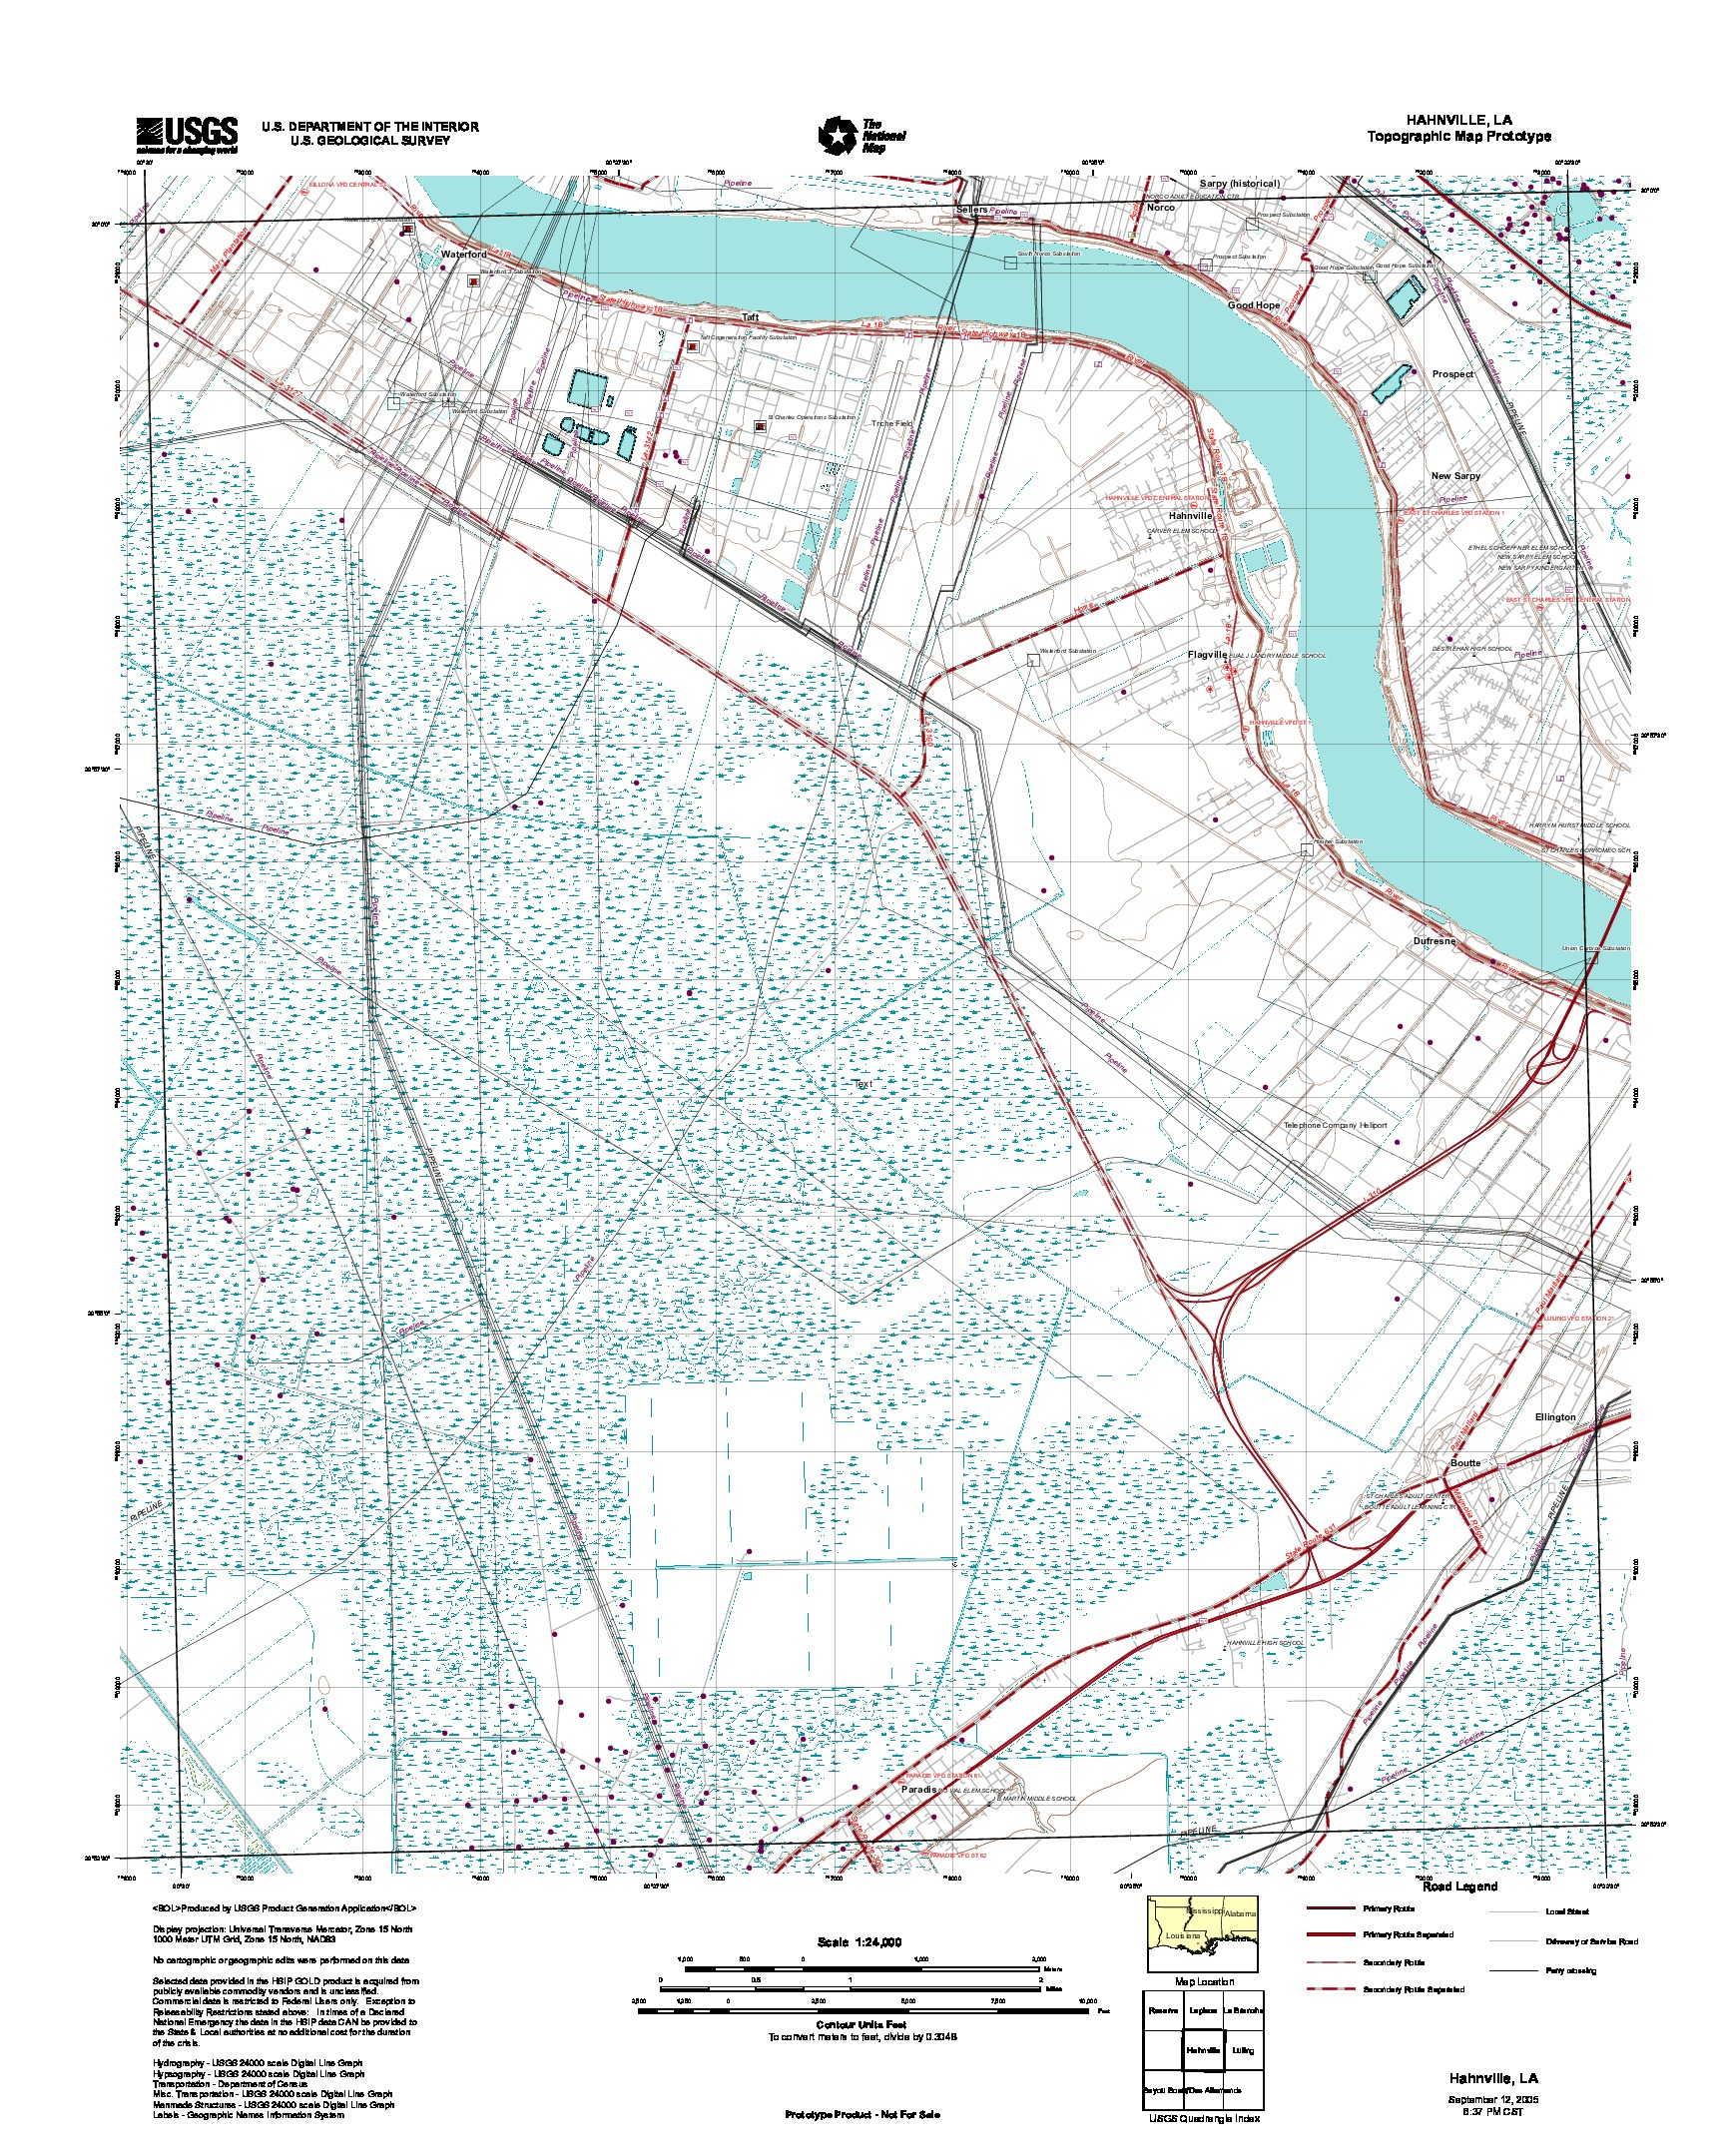 Hahnville, Topographic Map Prototype, Louisiana, United States, September 12, 2005